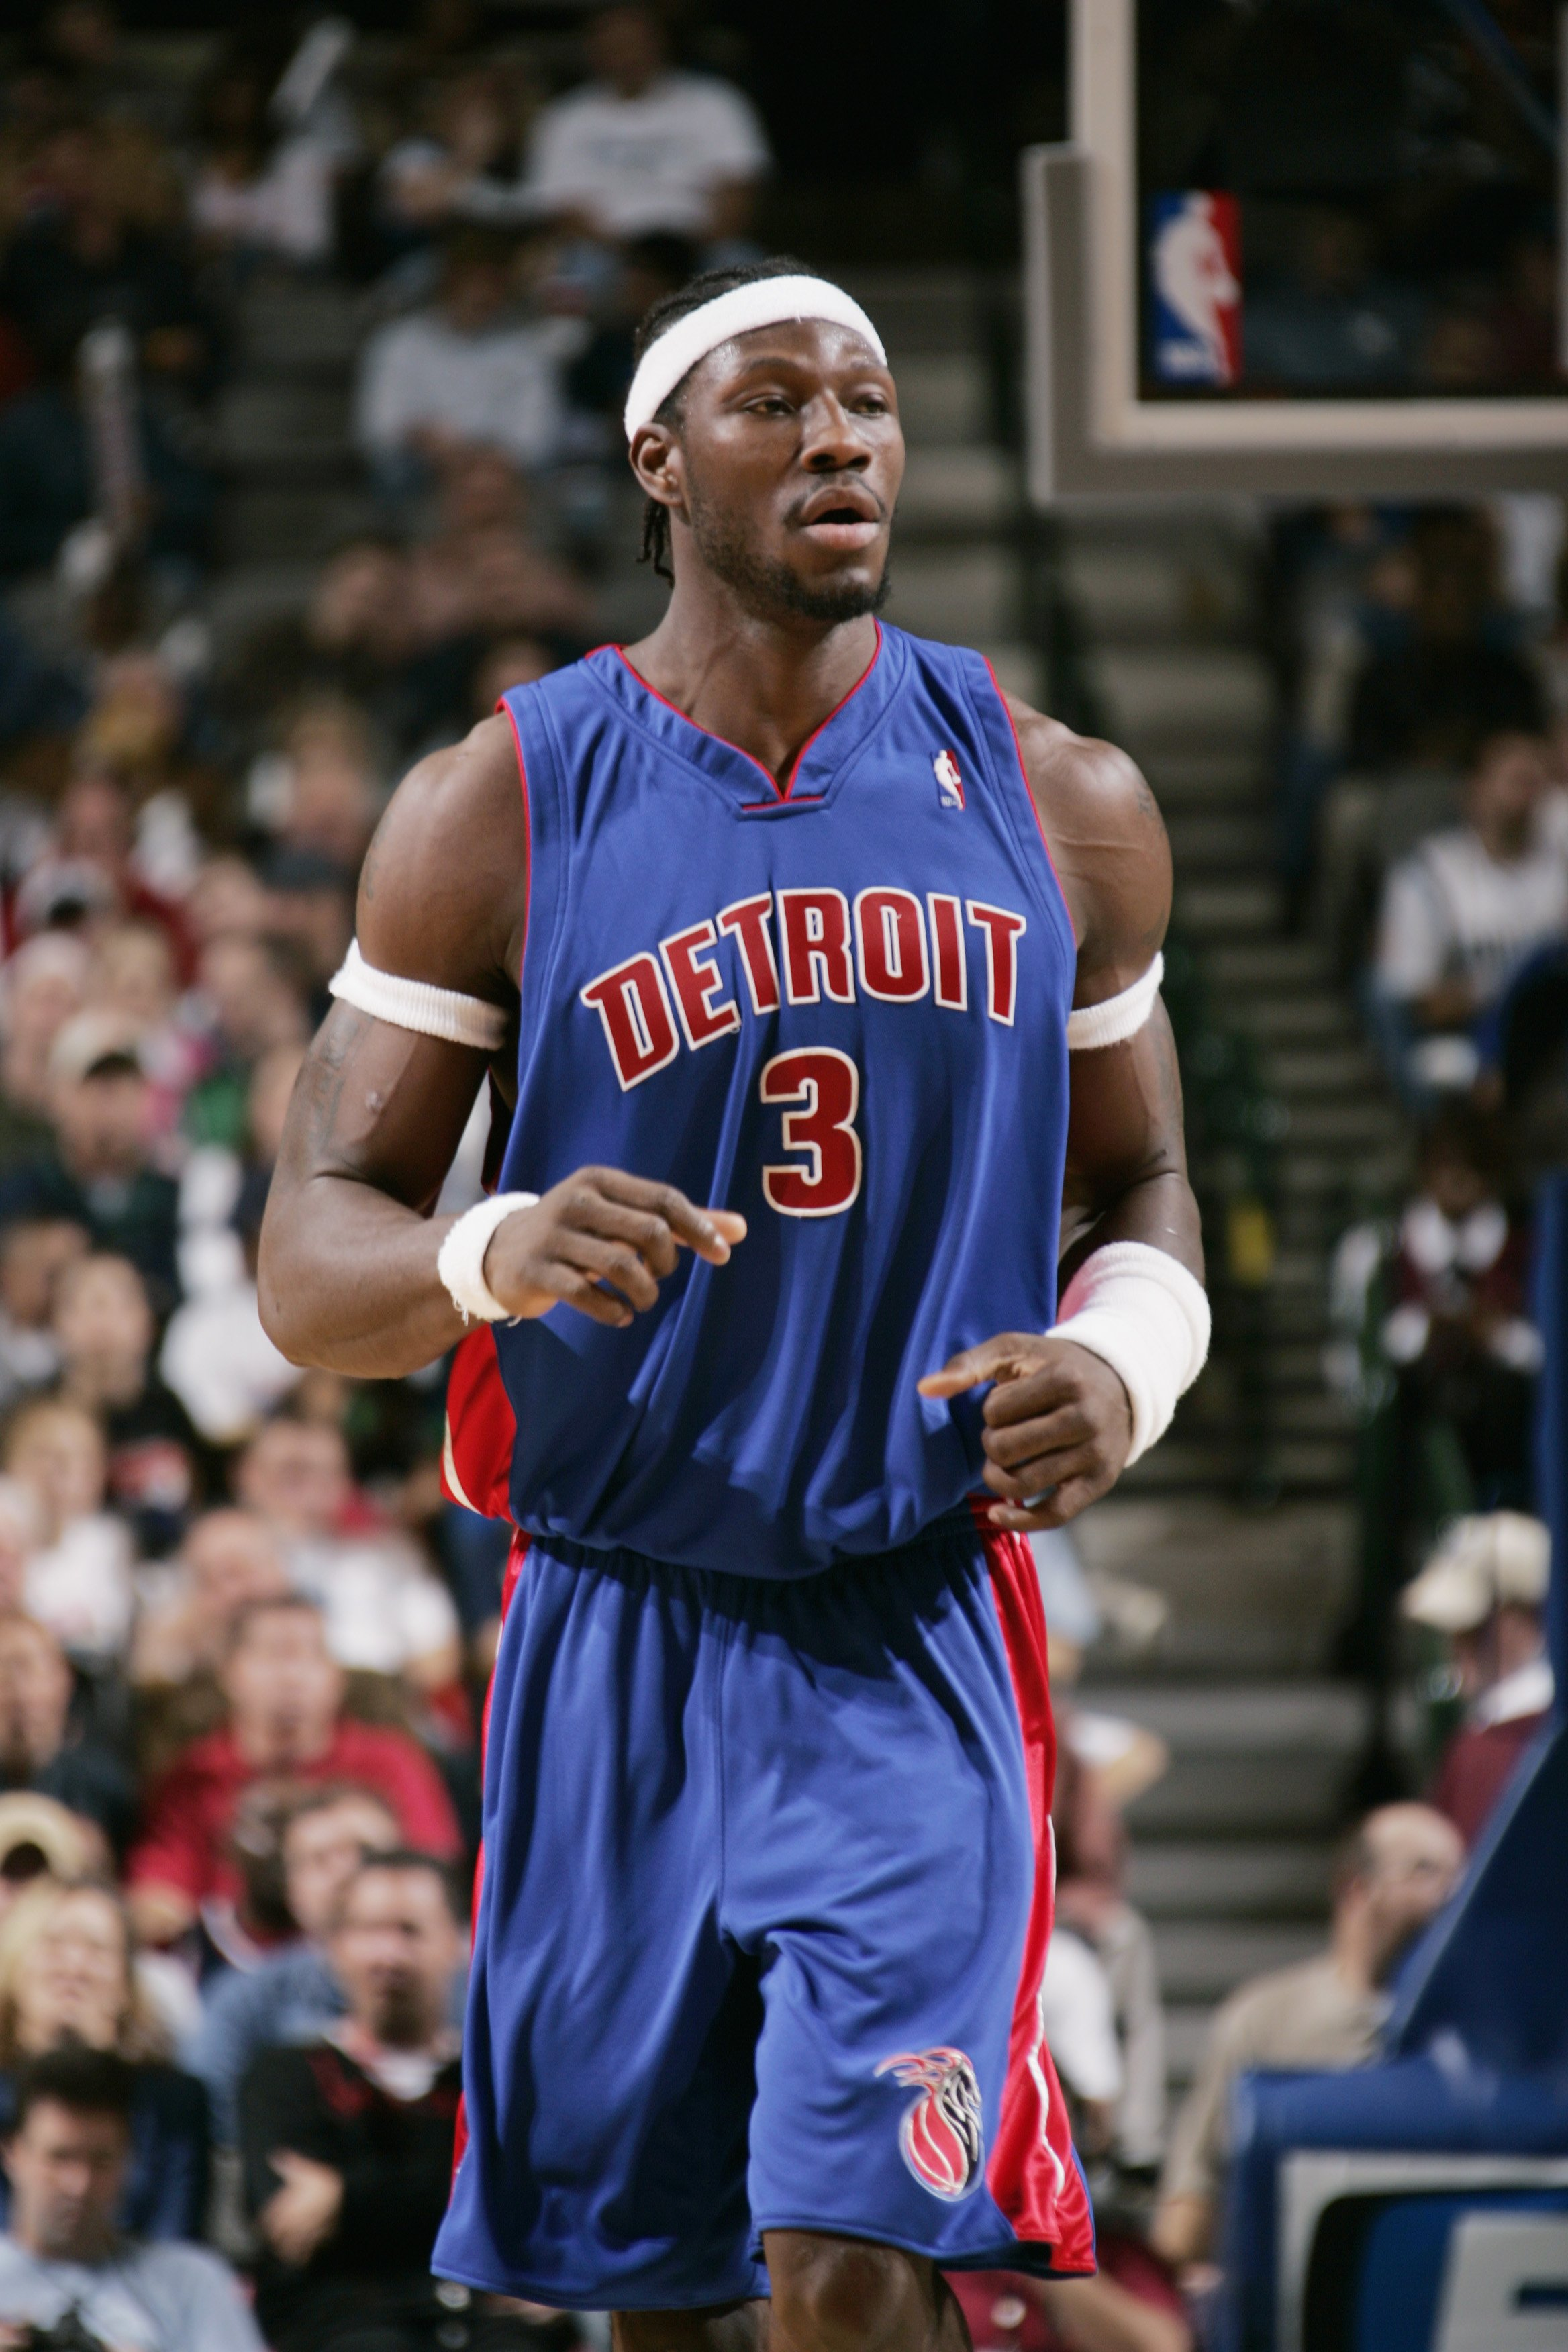 Ben Wallace #3 of the Detroit Pistons stands on the court during the game against the Dallas Mavericks on December 6, 2004 | Photo: GettyImages